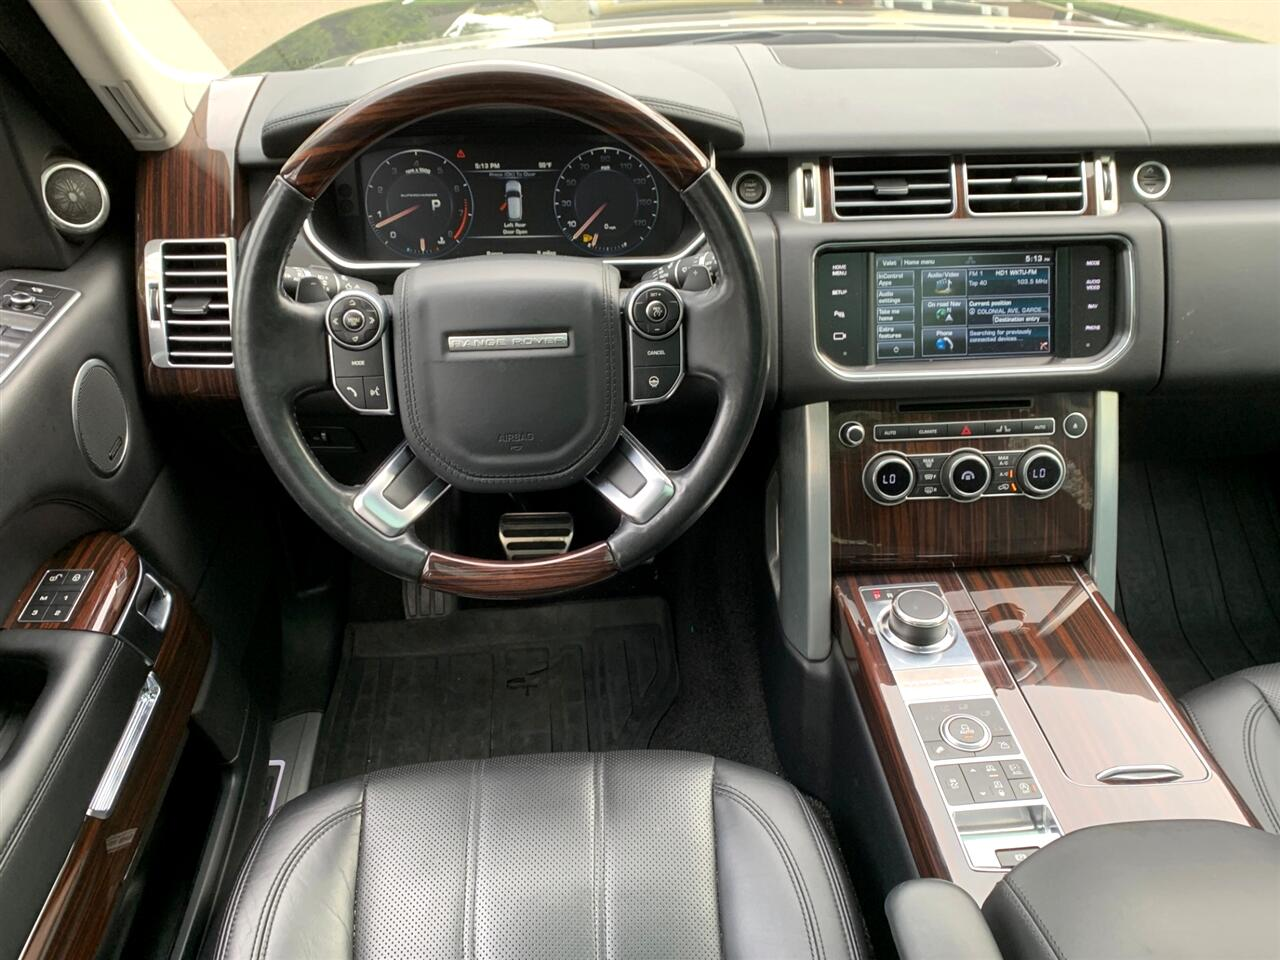 Land Rover Range Rover Supercharged LWB 2015